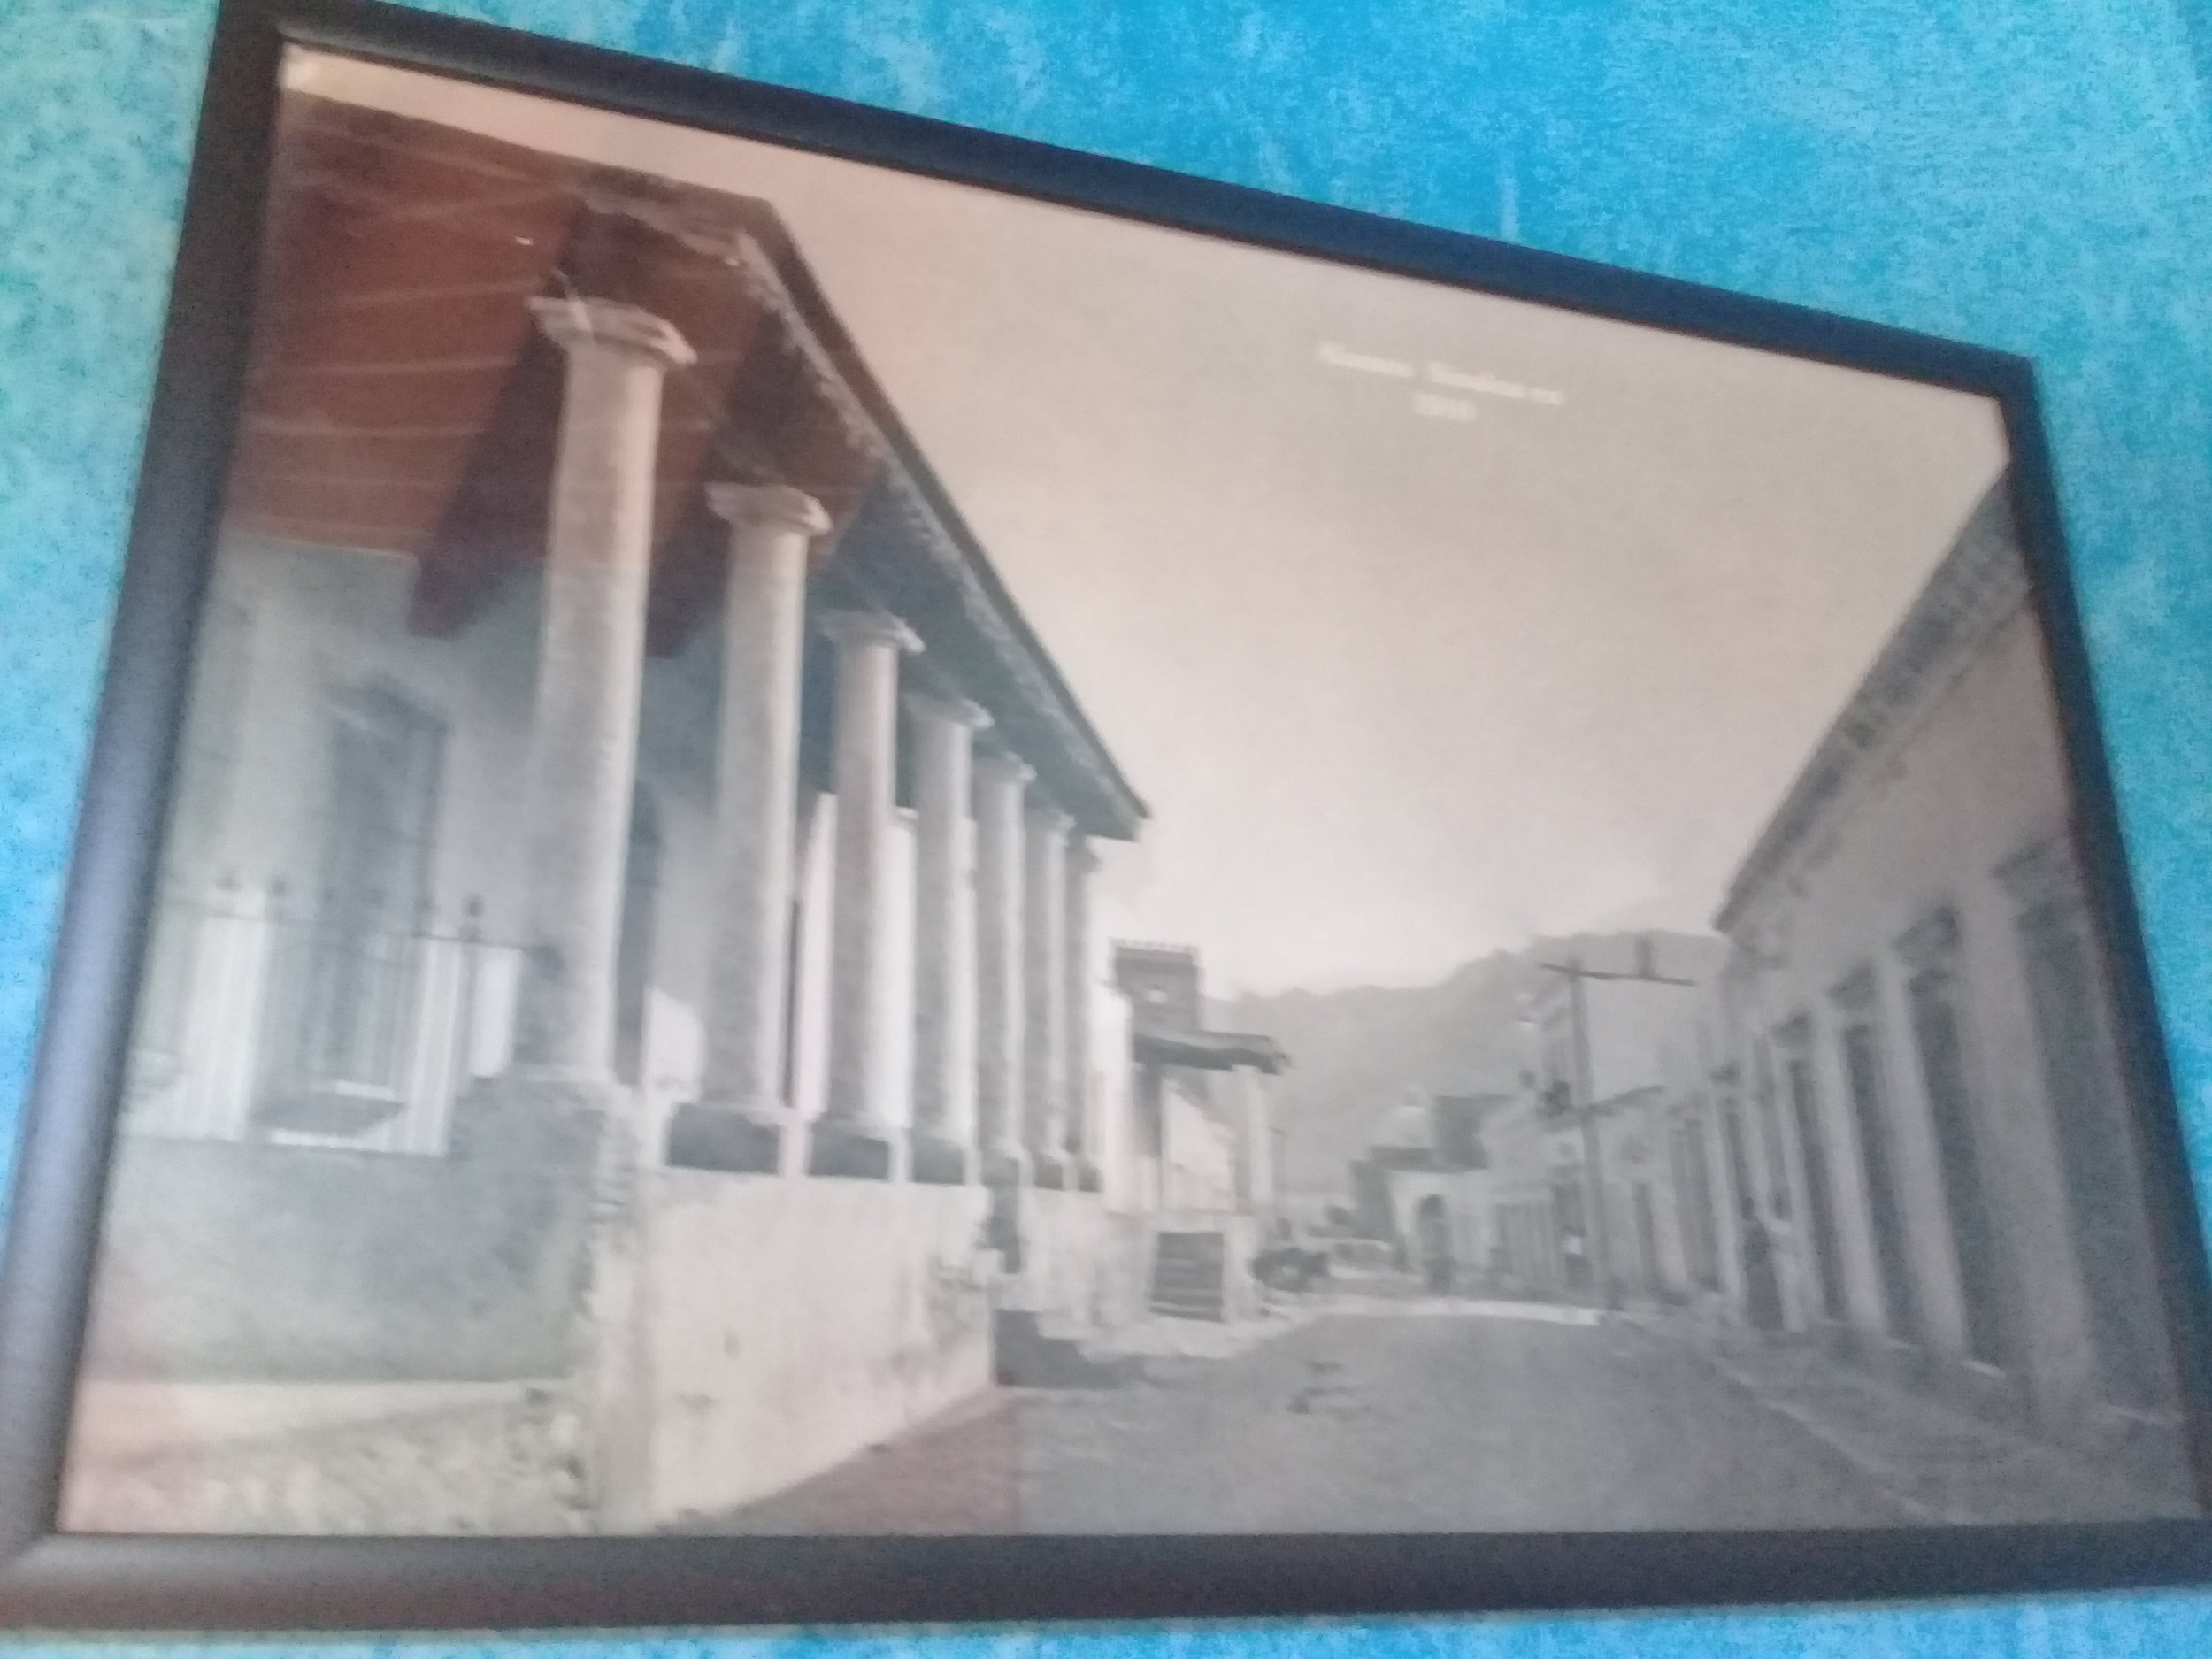 This photo was taken in 1910